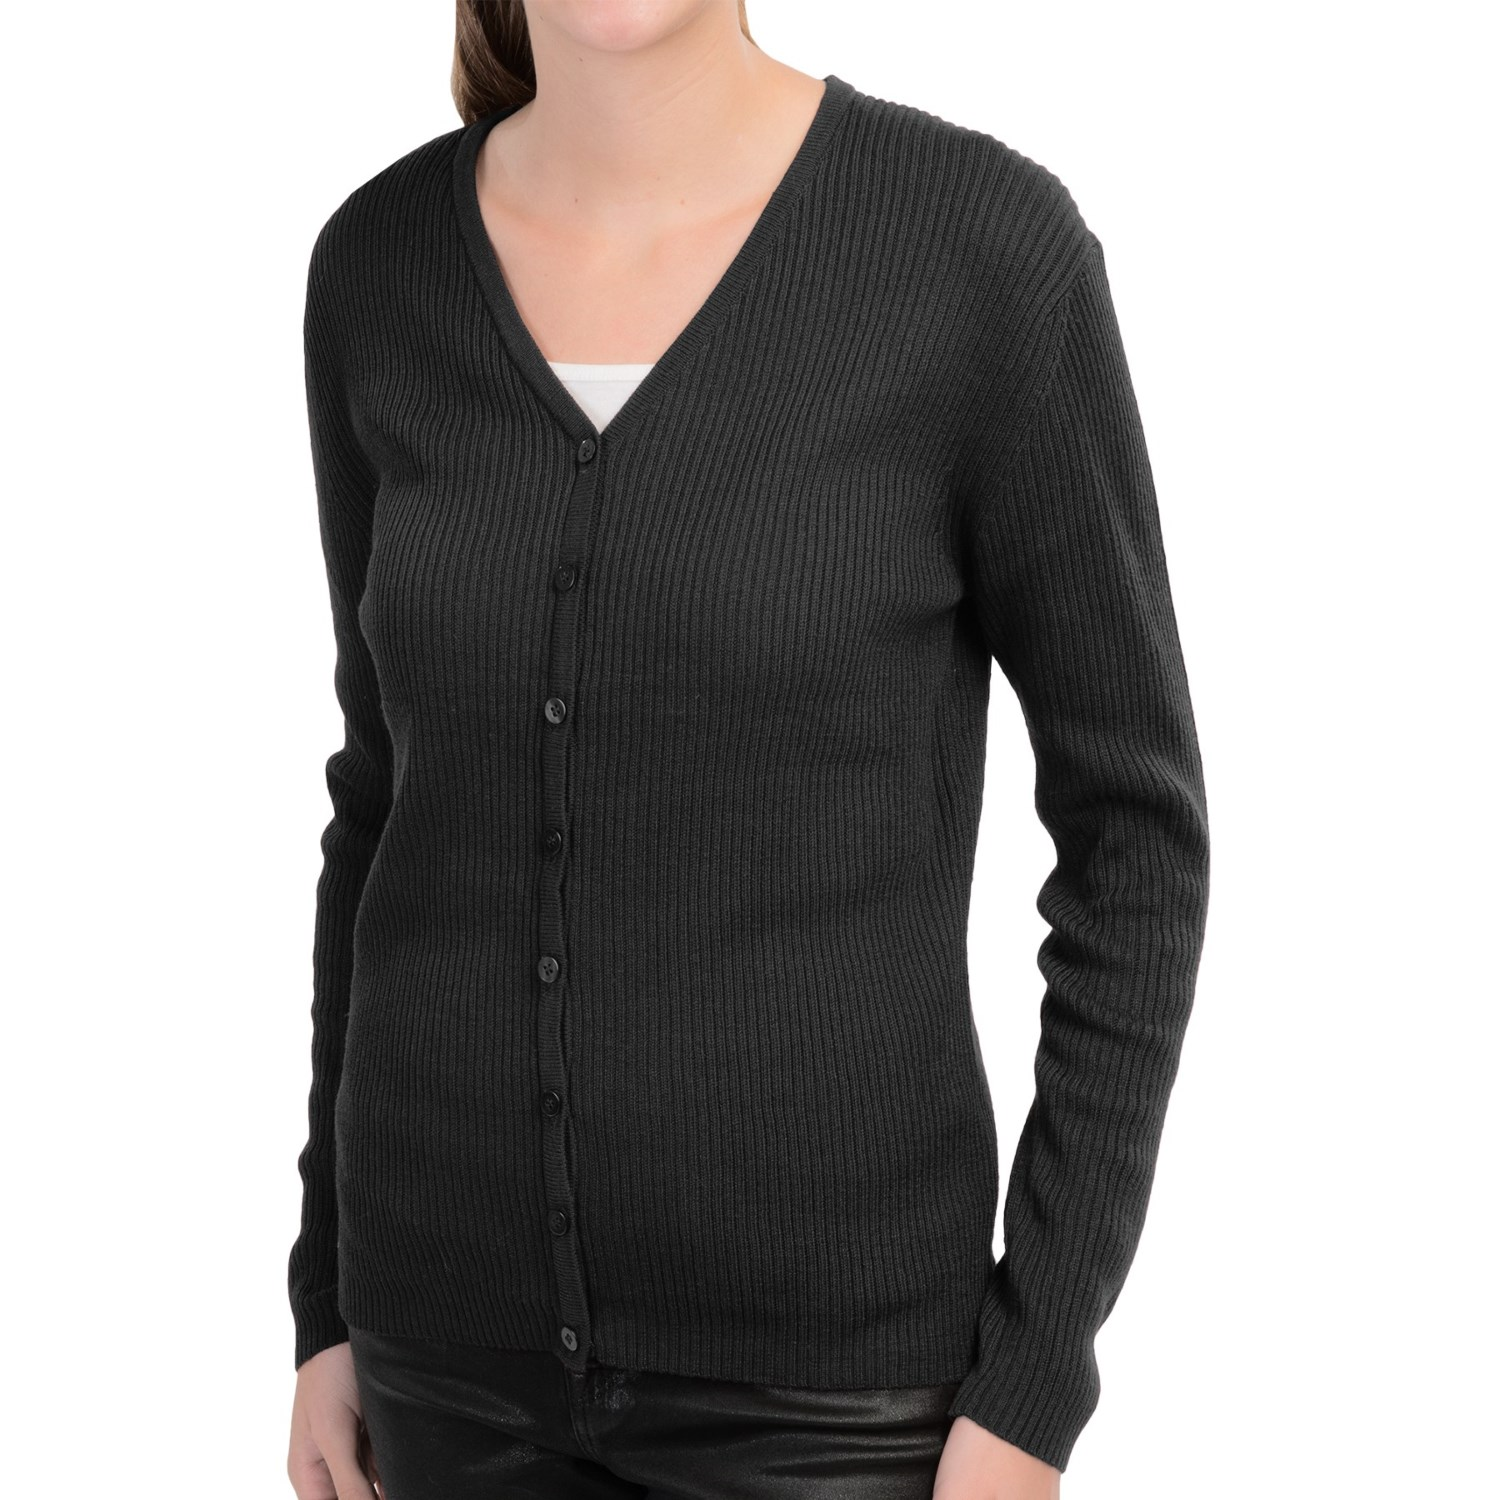 Sumptously Soft Ribbed Cardigan Sweater: neyschelethel.ga Soft. There's no other way to describe this luscious button-front cardigan. Feminine V-neckline and full needle stitching completes the look.